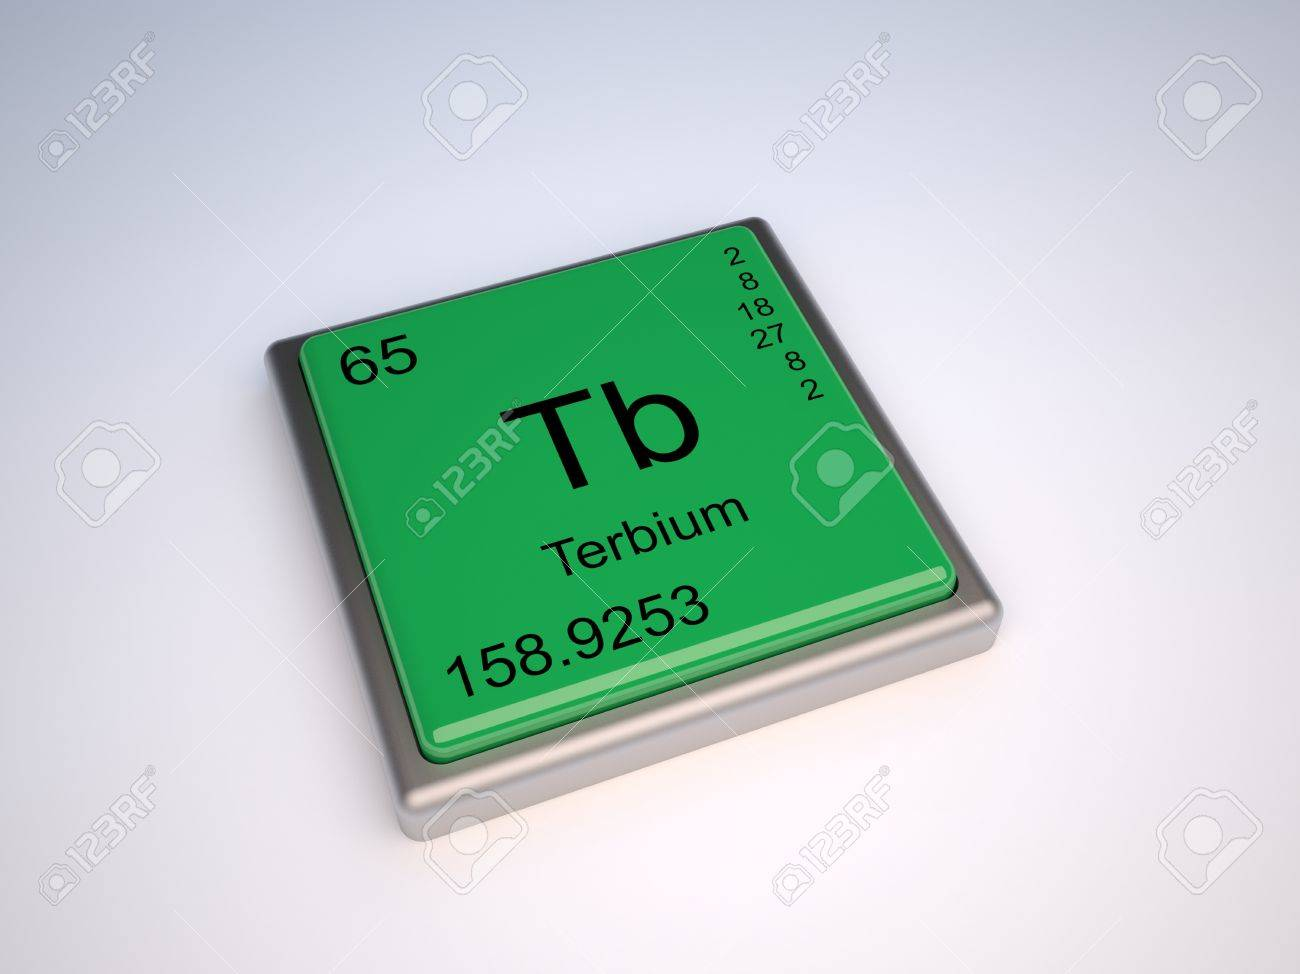 Tb periodic table image collections periodic table images tb periodic table choice image periodic table images terbium chemical element of the periodic table with gamestrikefo Image collections